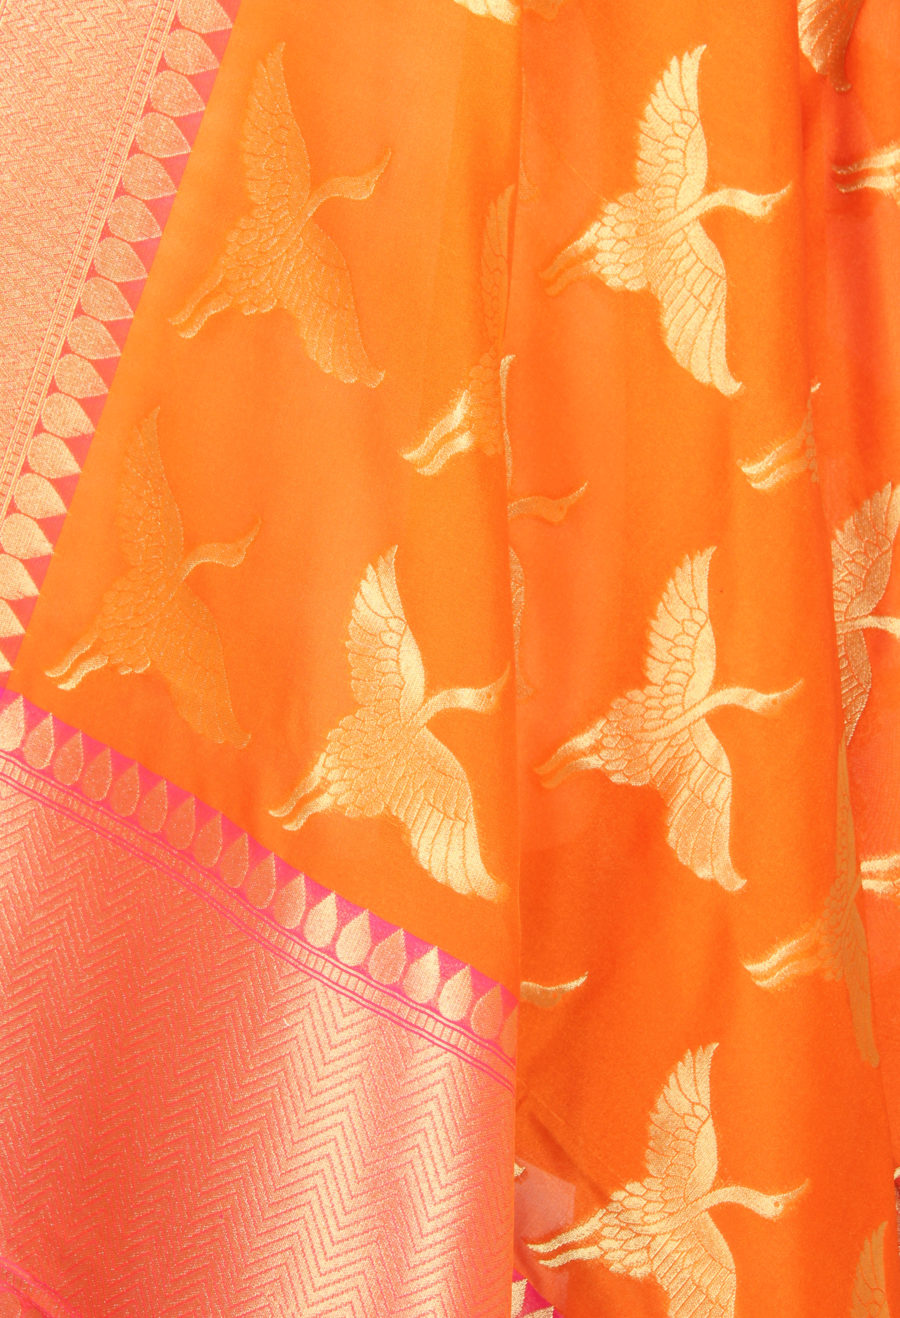 Orange Banarasi dupatta with flying stork motifs (2) Close up